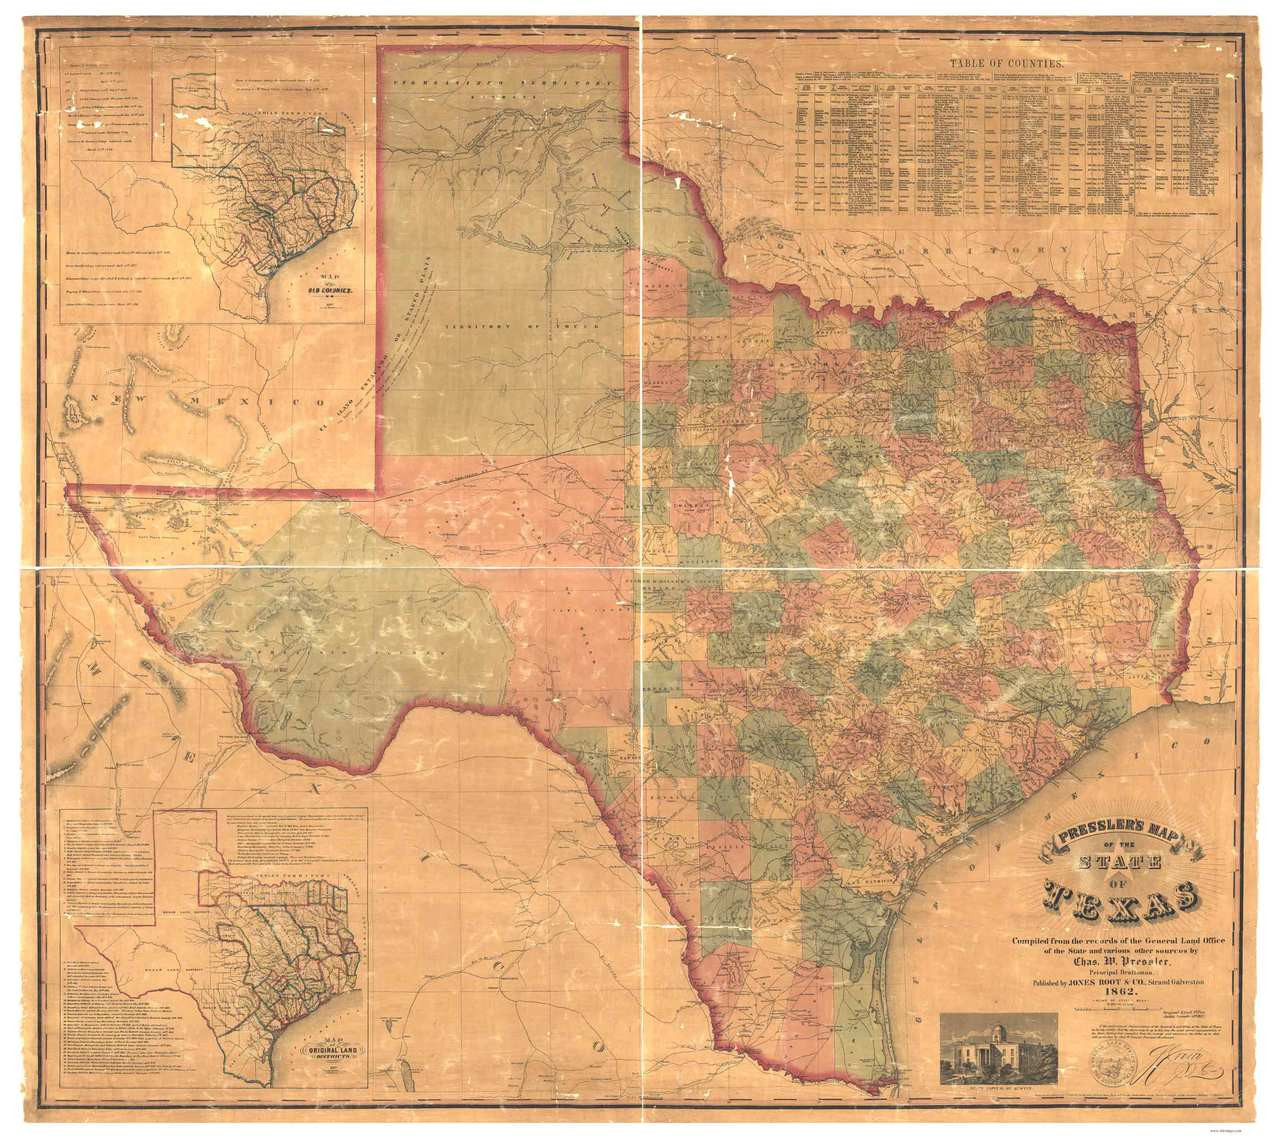 Old Map Of Texas.Texas 1862 Pressler Old State Map Reprint